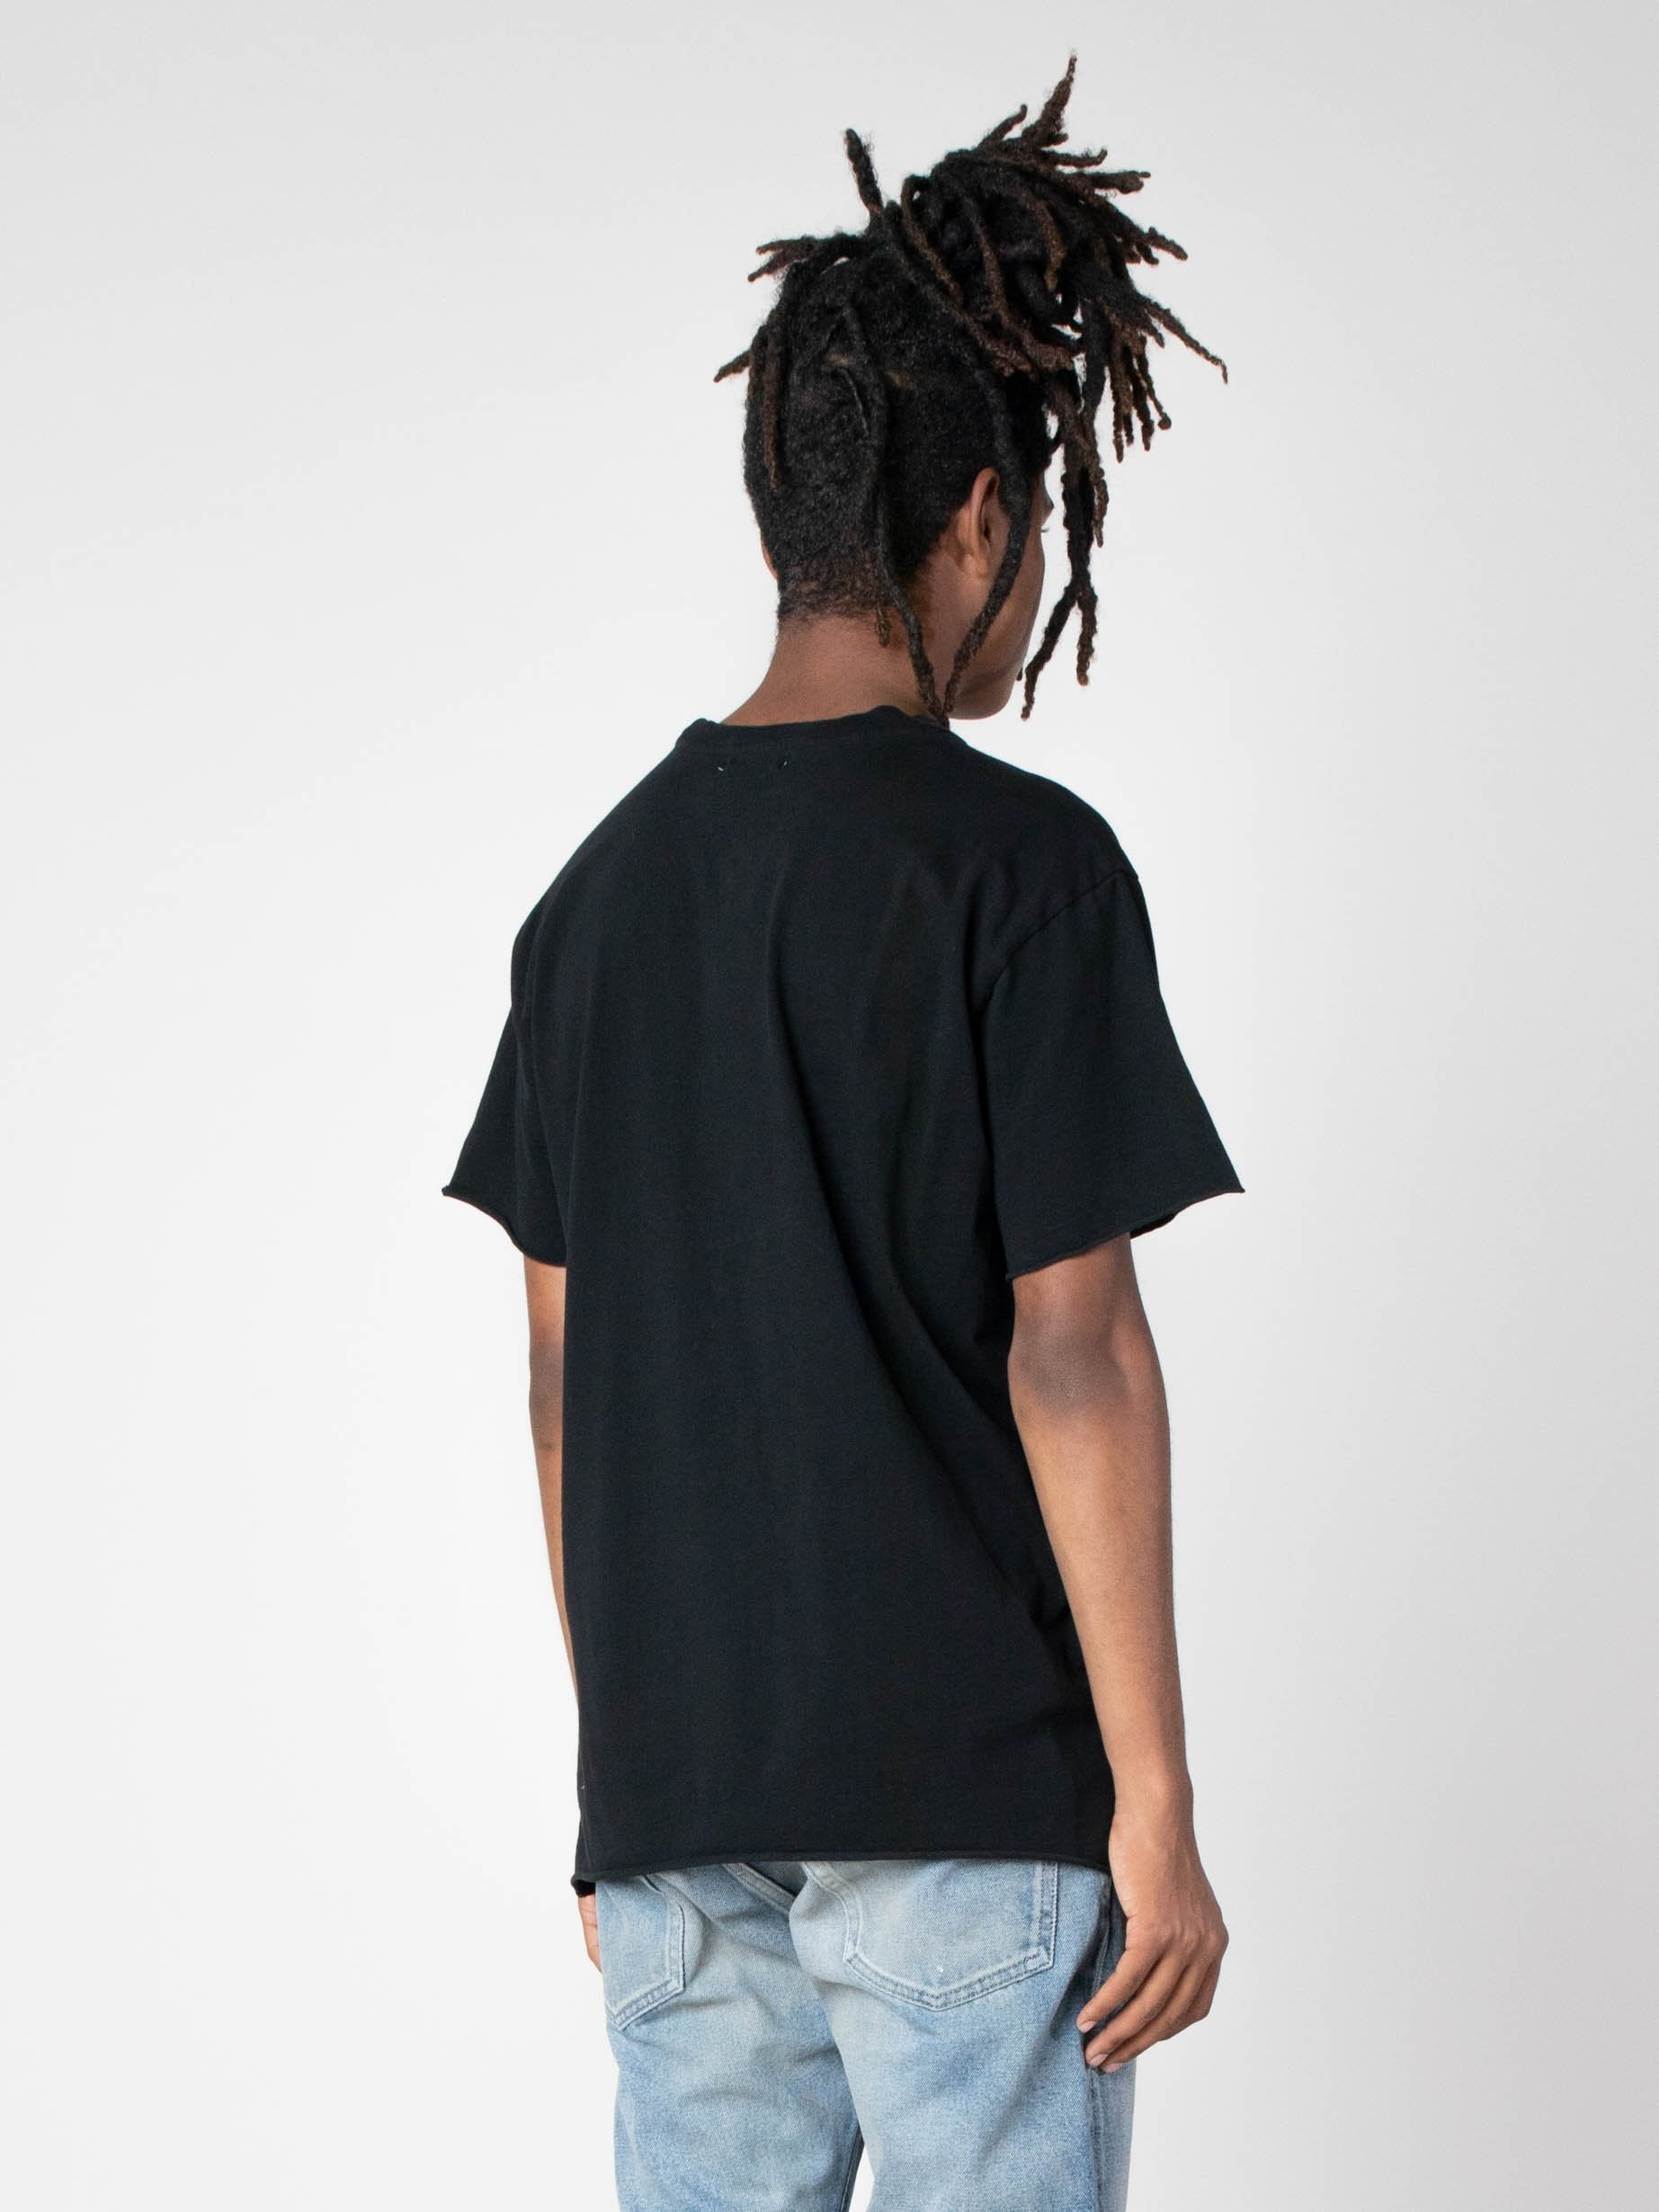 Black Anti-Expo T-Shirt 5